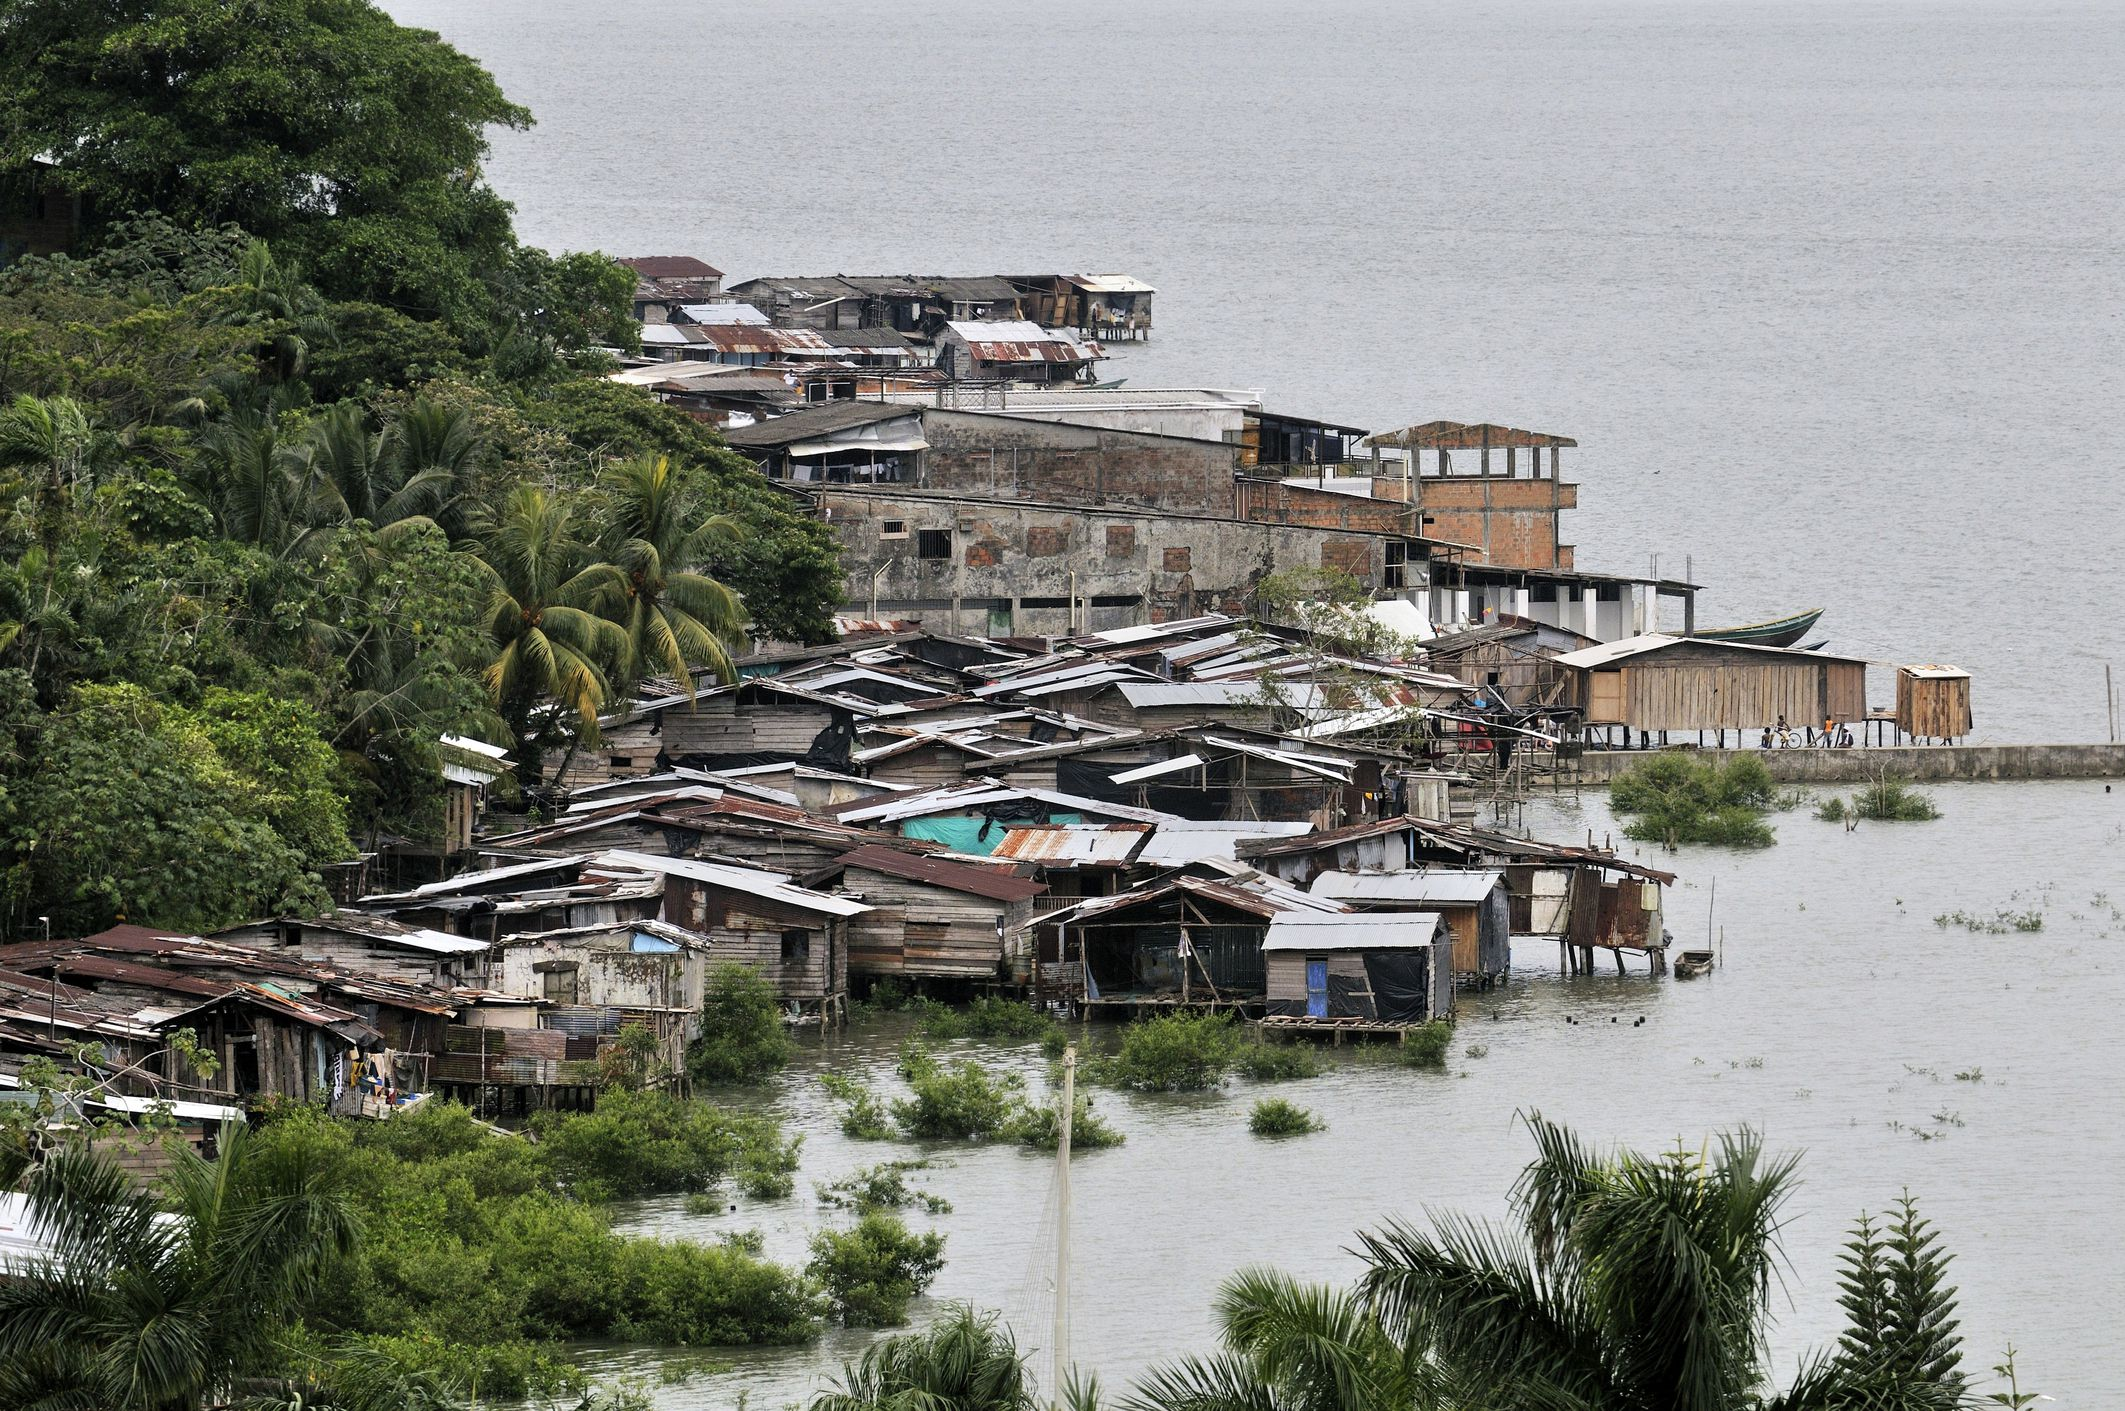 Traditional district, slum with stilt houses on the mangrove banks of the Pacific coast at high tide, Buenaventura, Valle del Cauca, Colombia, South America